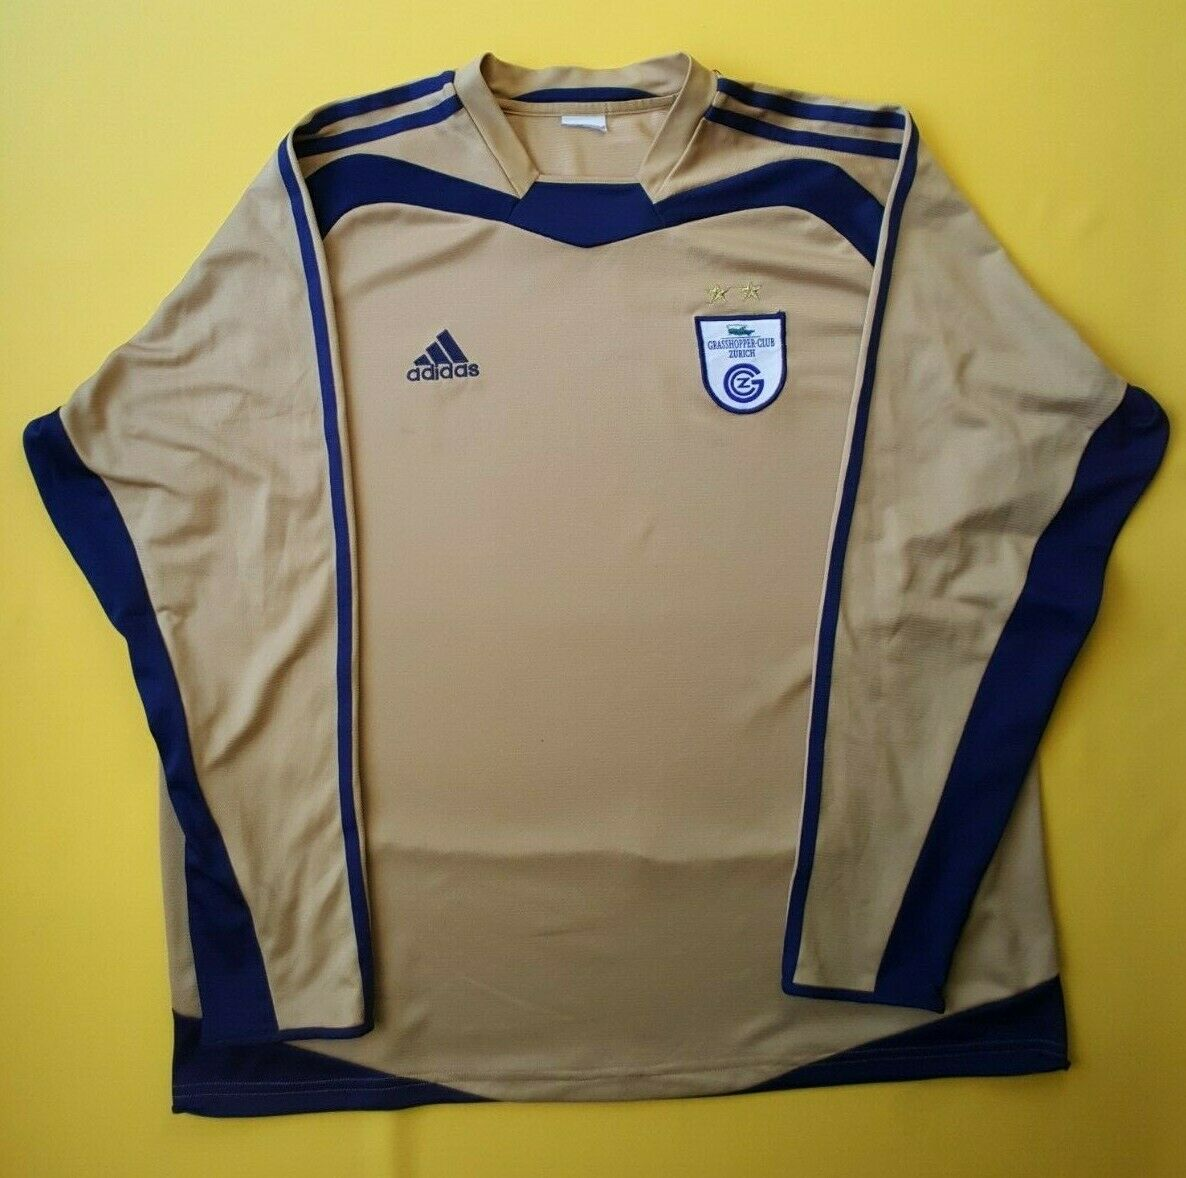 5 5 Grasshoppers jersey large 2004 2005 away shirt soccer football Adidas ig93